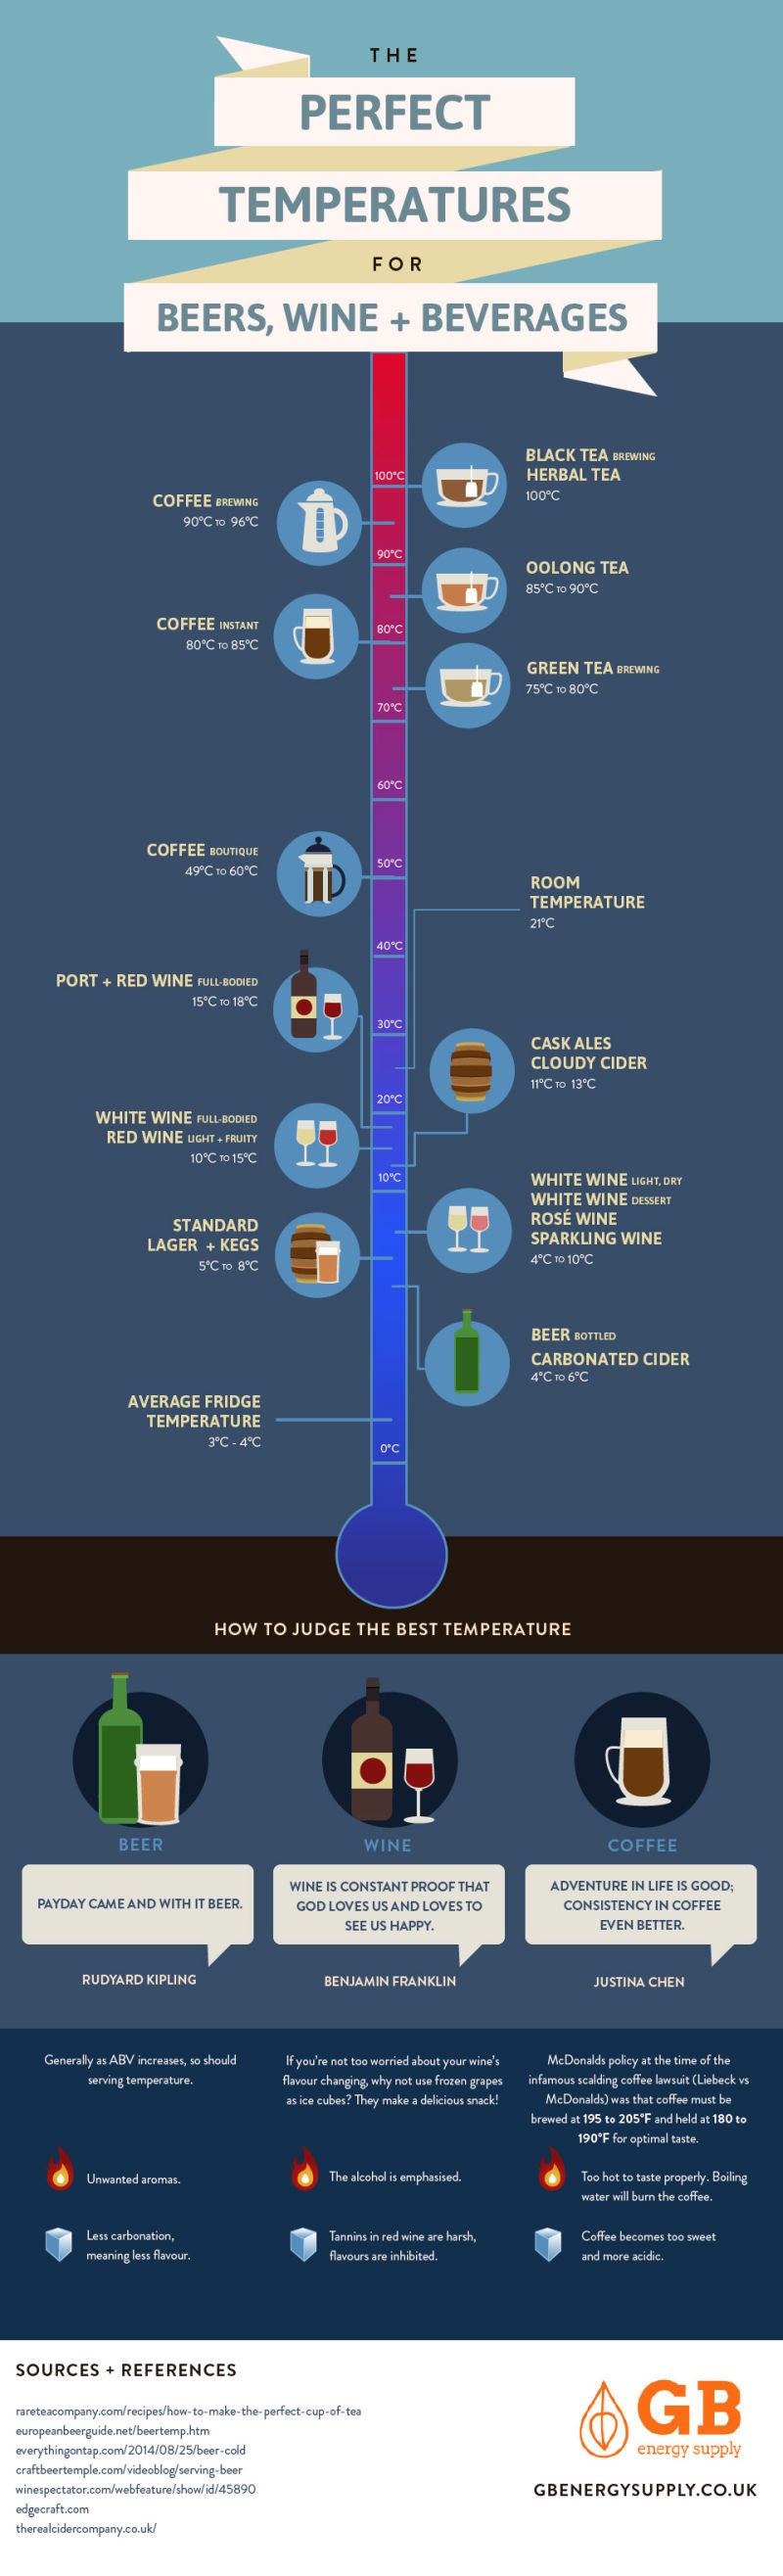 The Perfect Temperatures for Beer, Wine, Coffee and More infographic